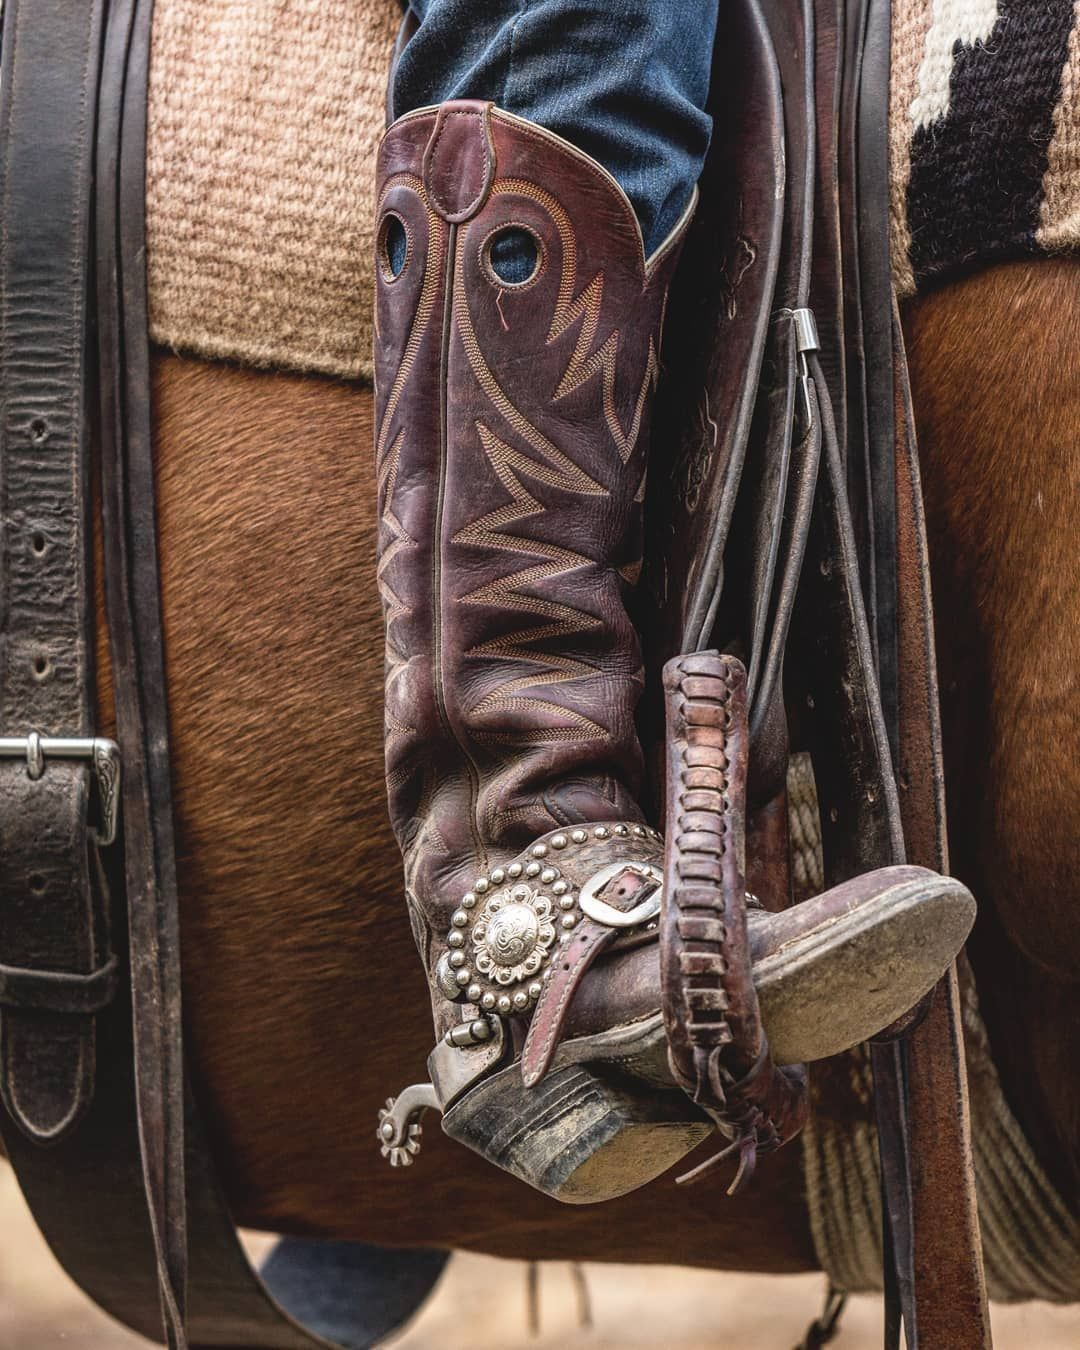 08bd5080ce6 Basic tall top riding boots and spurs | Gear - Boots I Like in 2019 ...